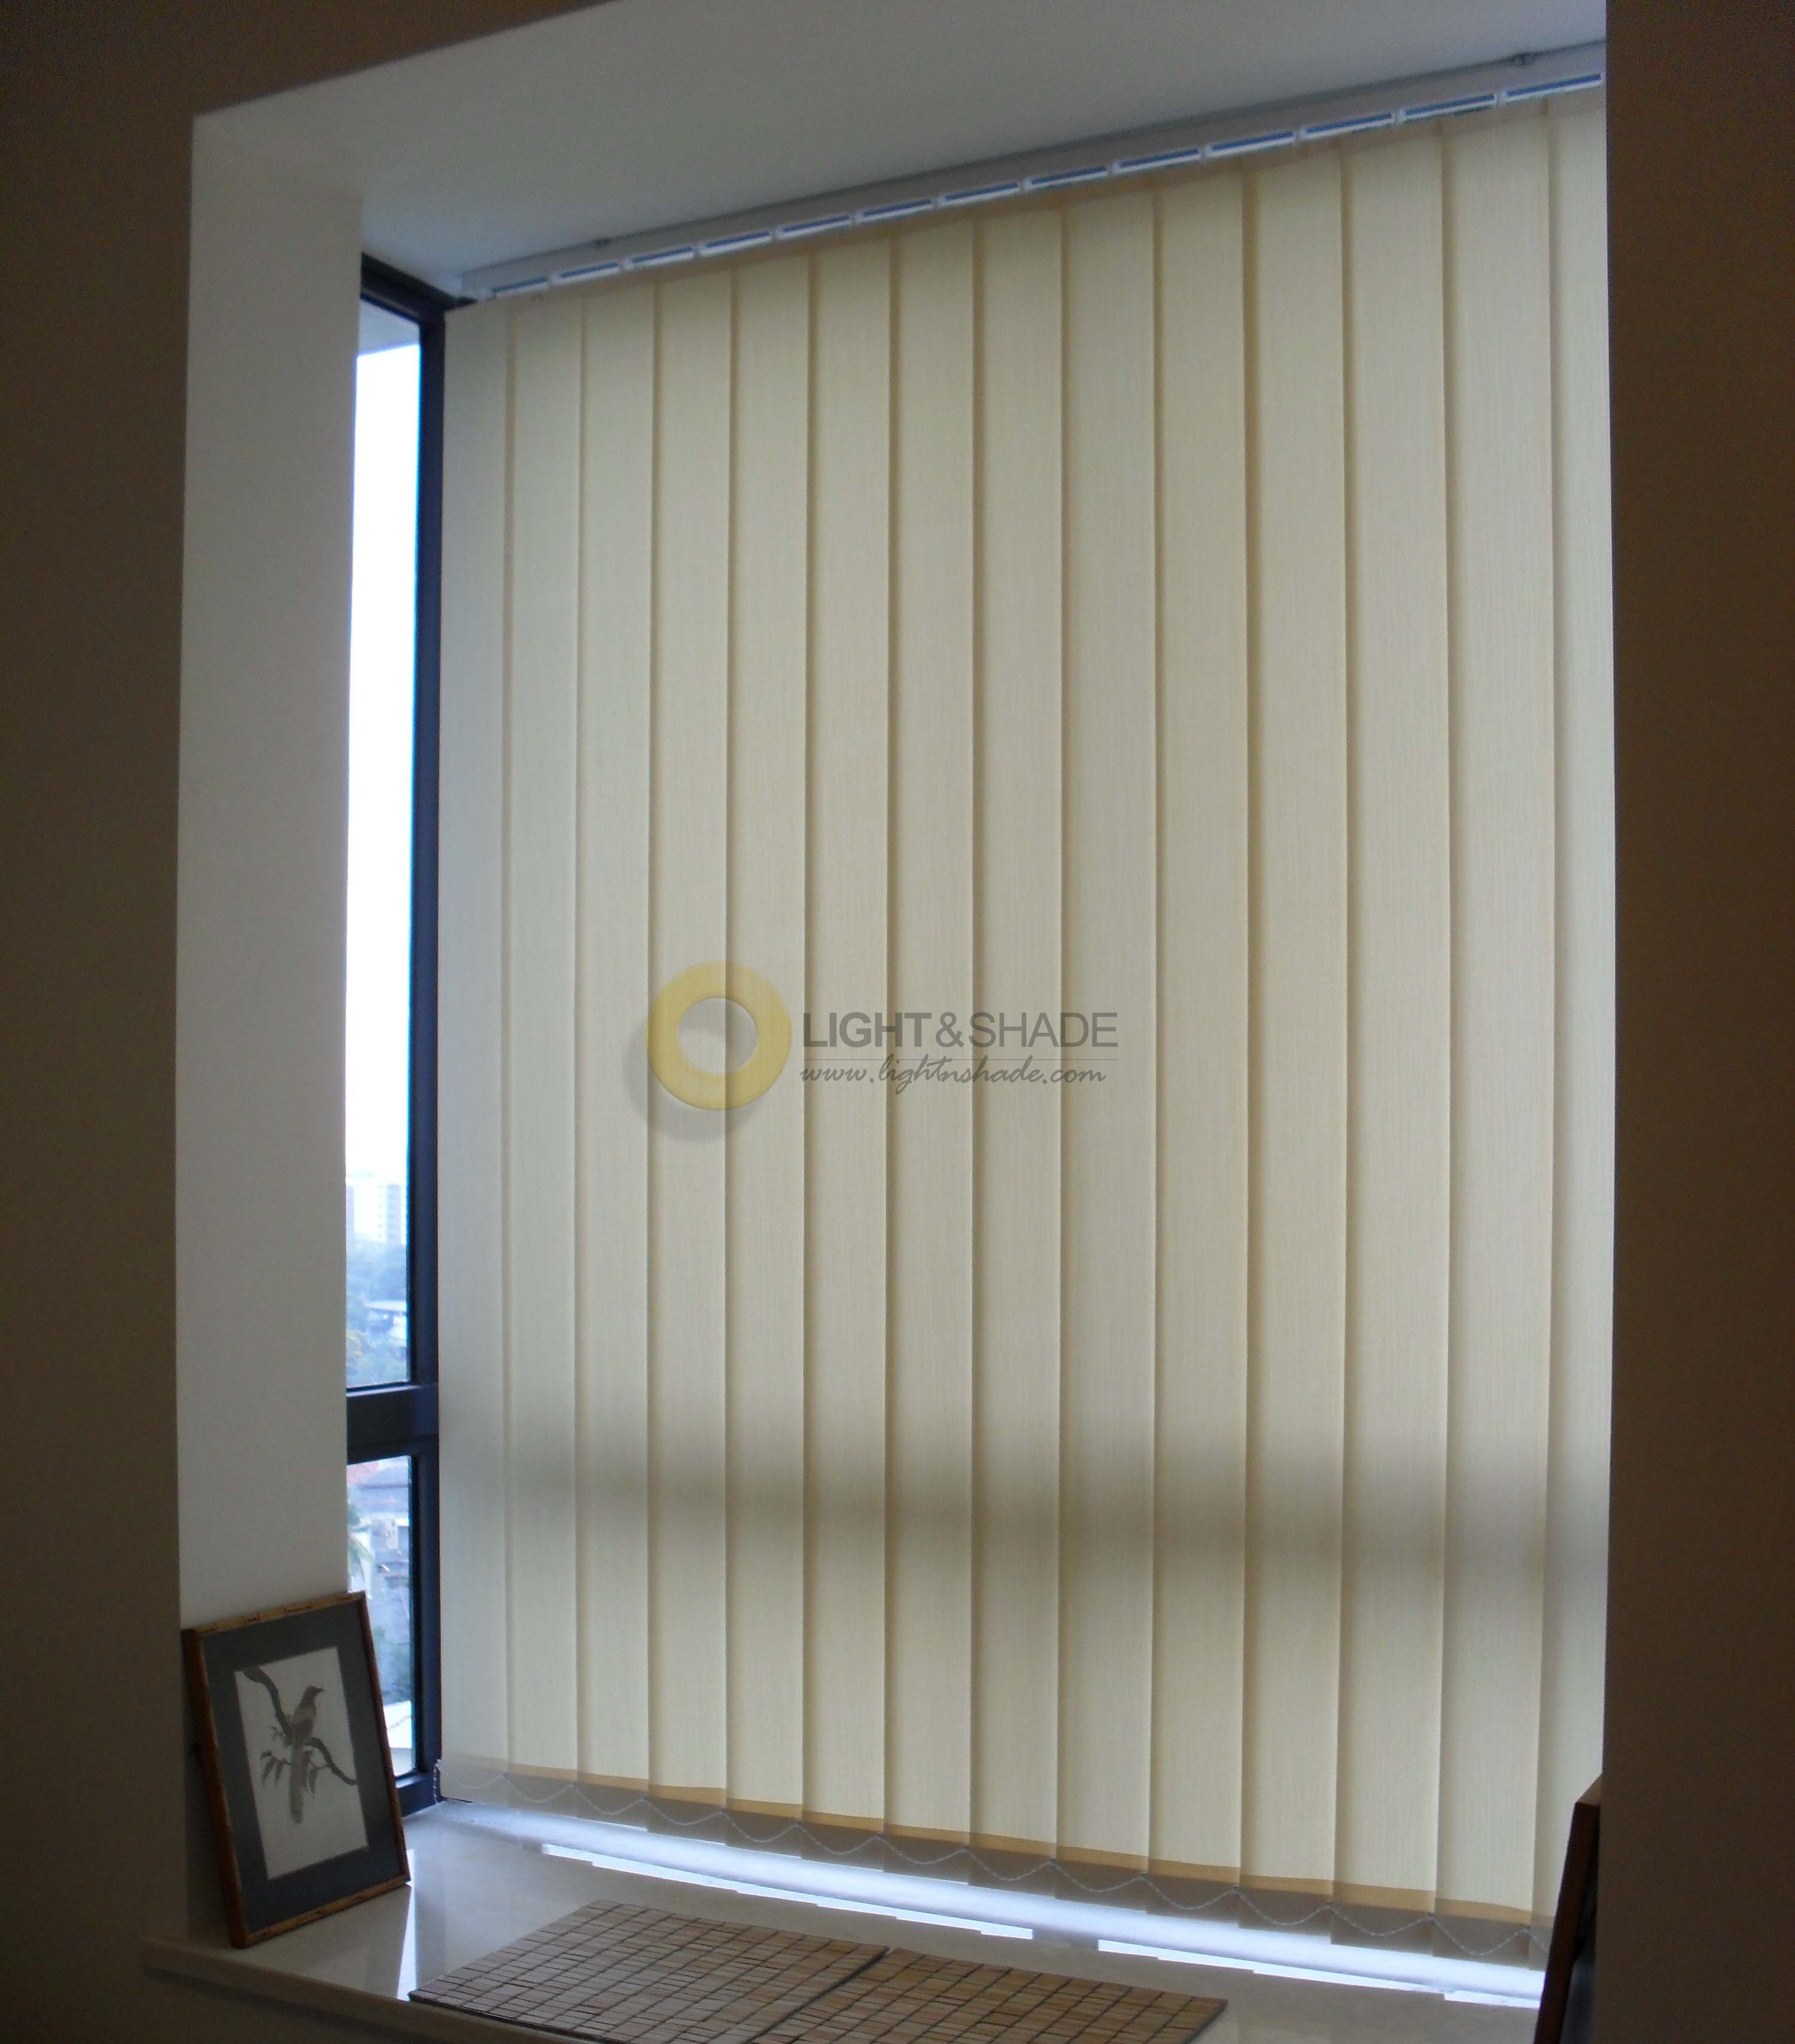 vertical blinds window blinds light shade sri lanka. Black Bedroom Furniture Sets. Home Design Ideas